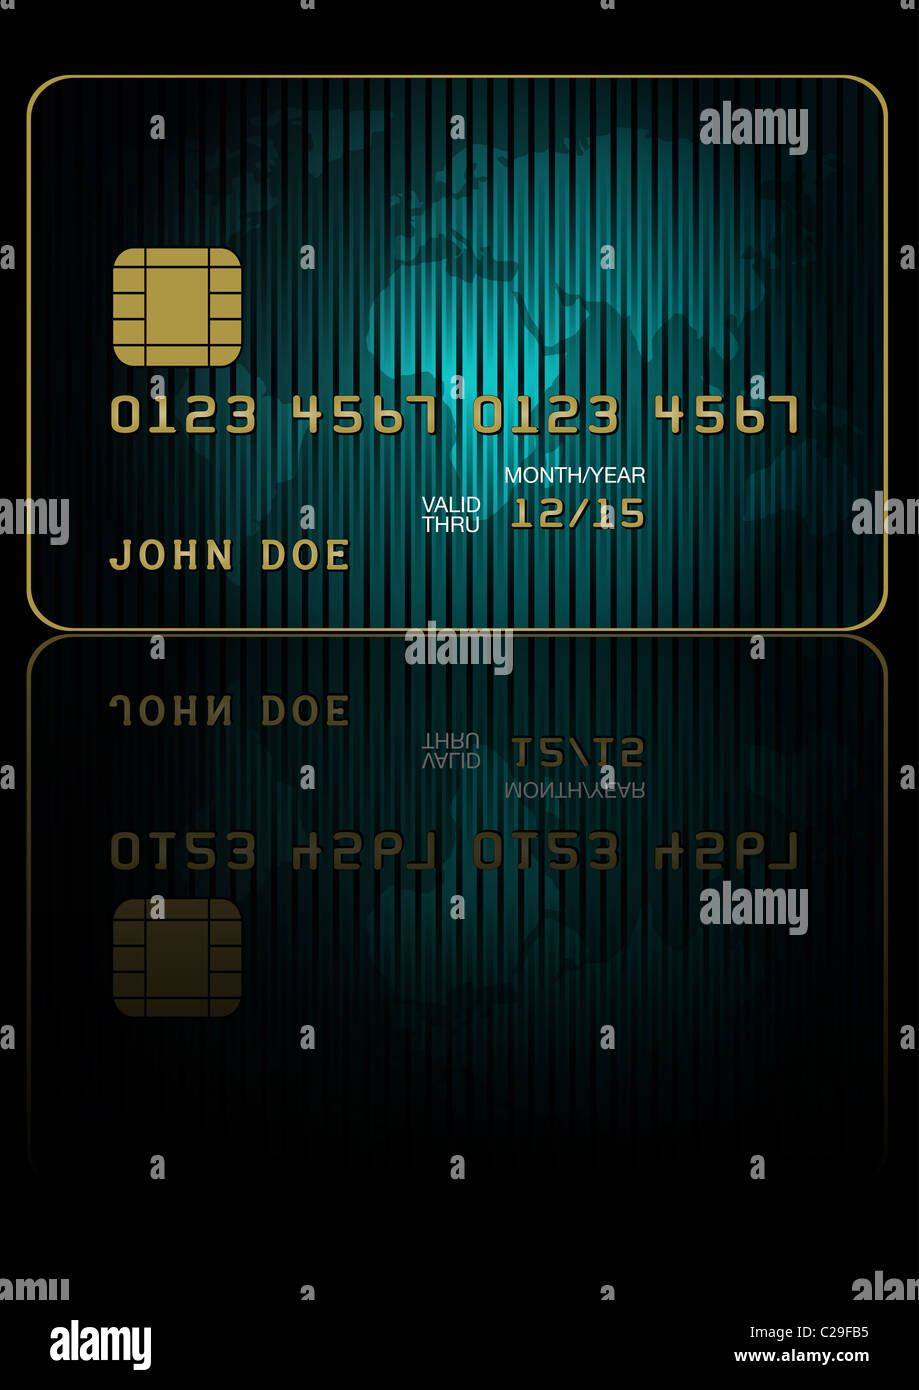 Credit card with world map on black background stock photo 35859689 credit card with world map on black background gumiabroncs Choice Image